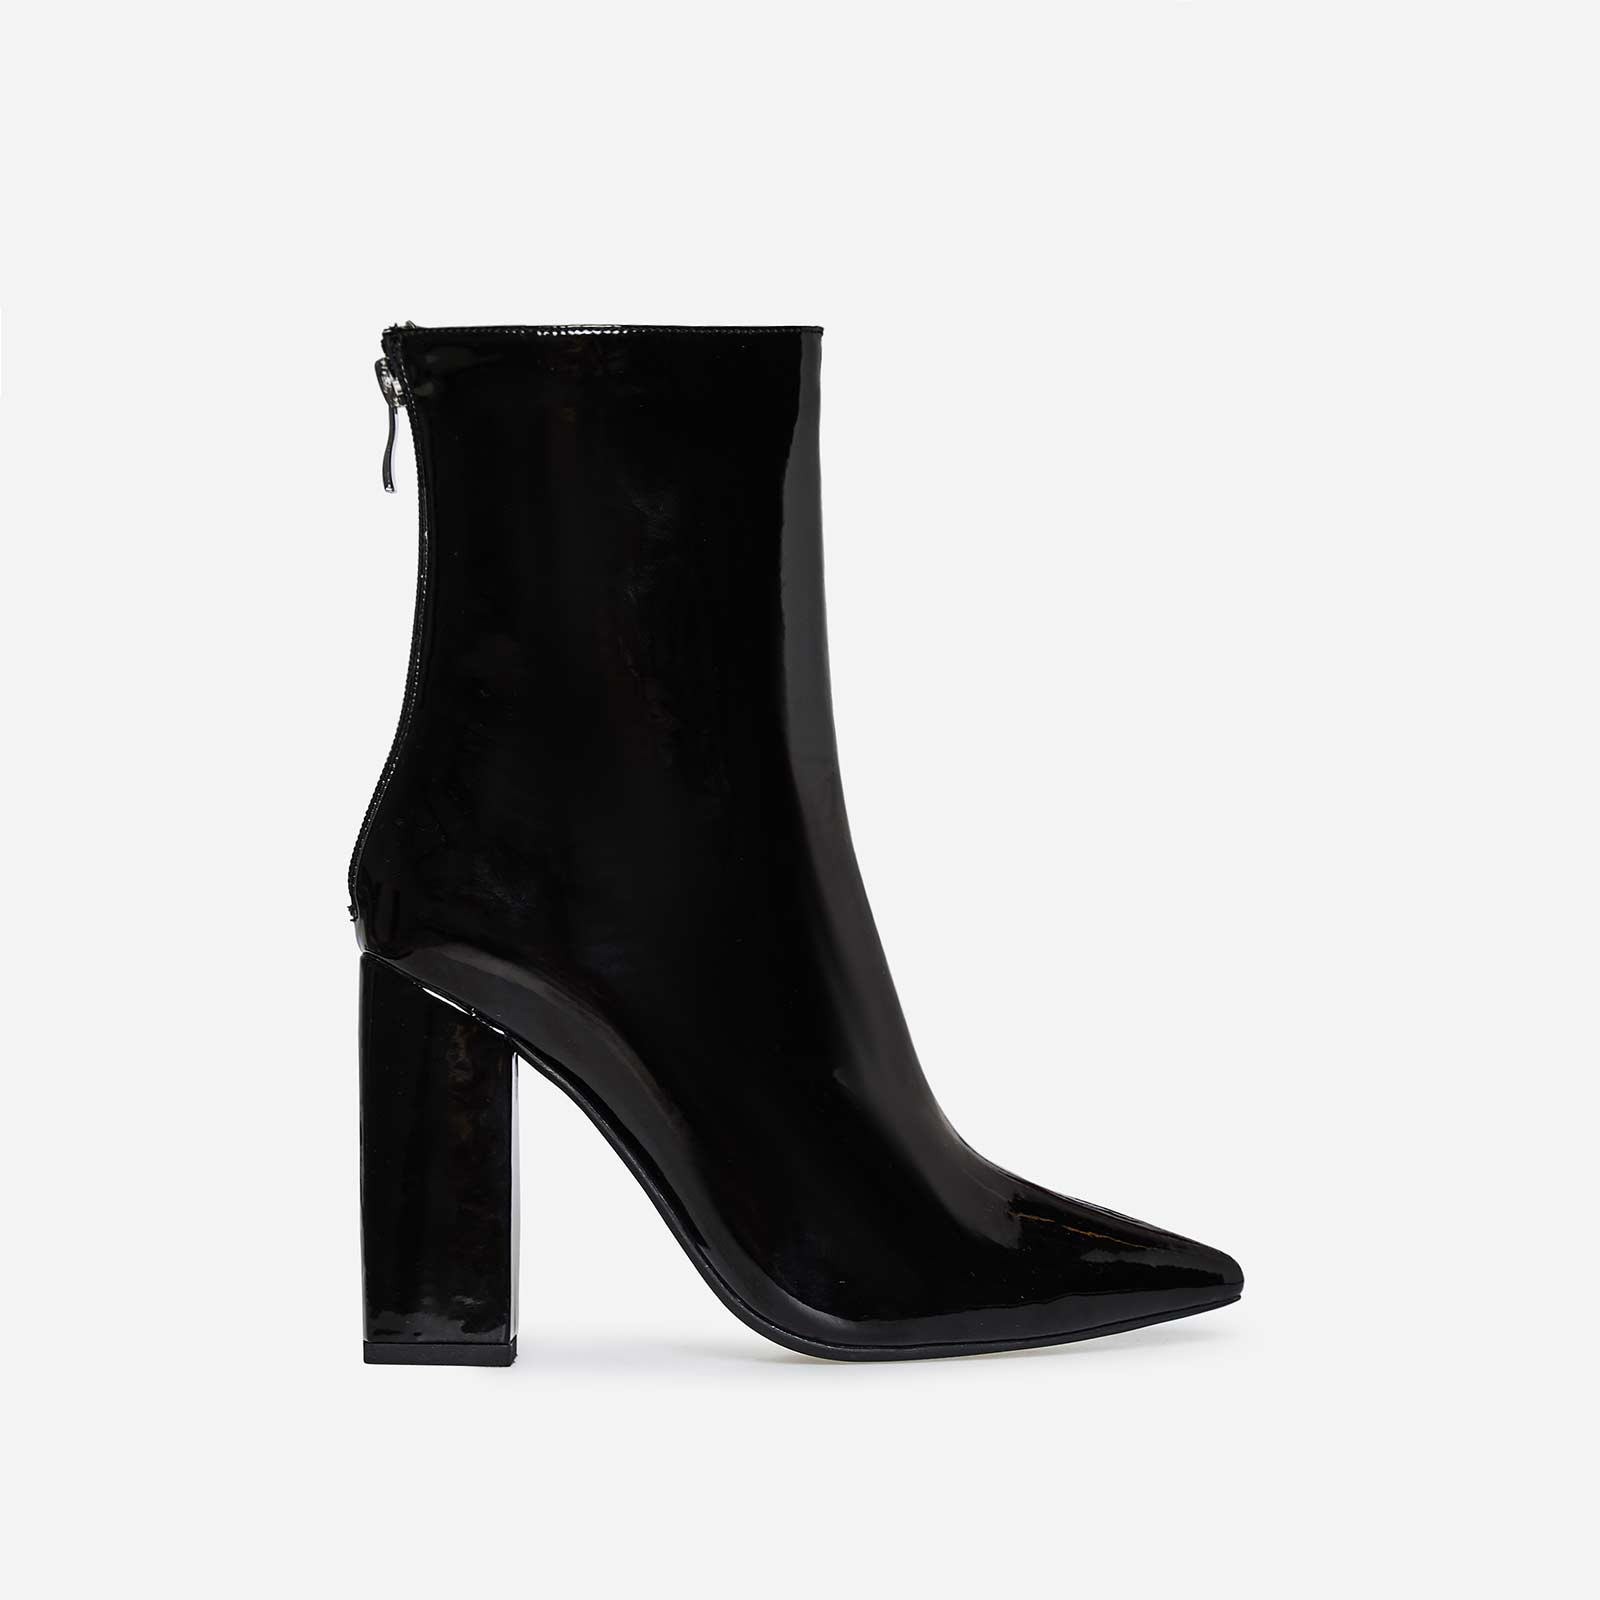 Everly Block Heel Ankle Boot In Black Patent